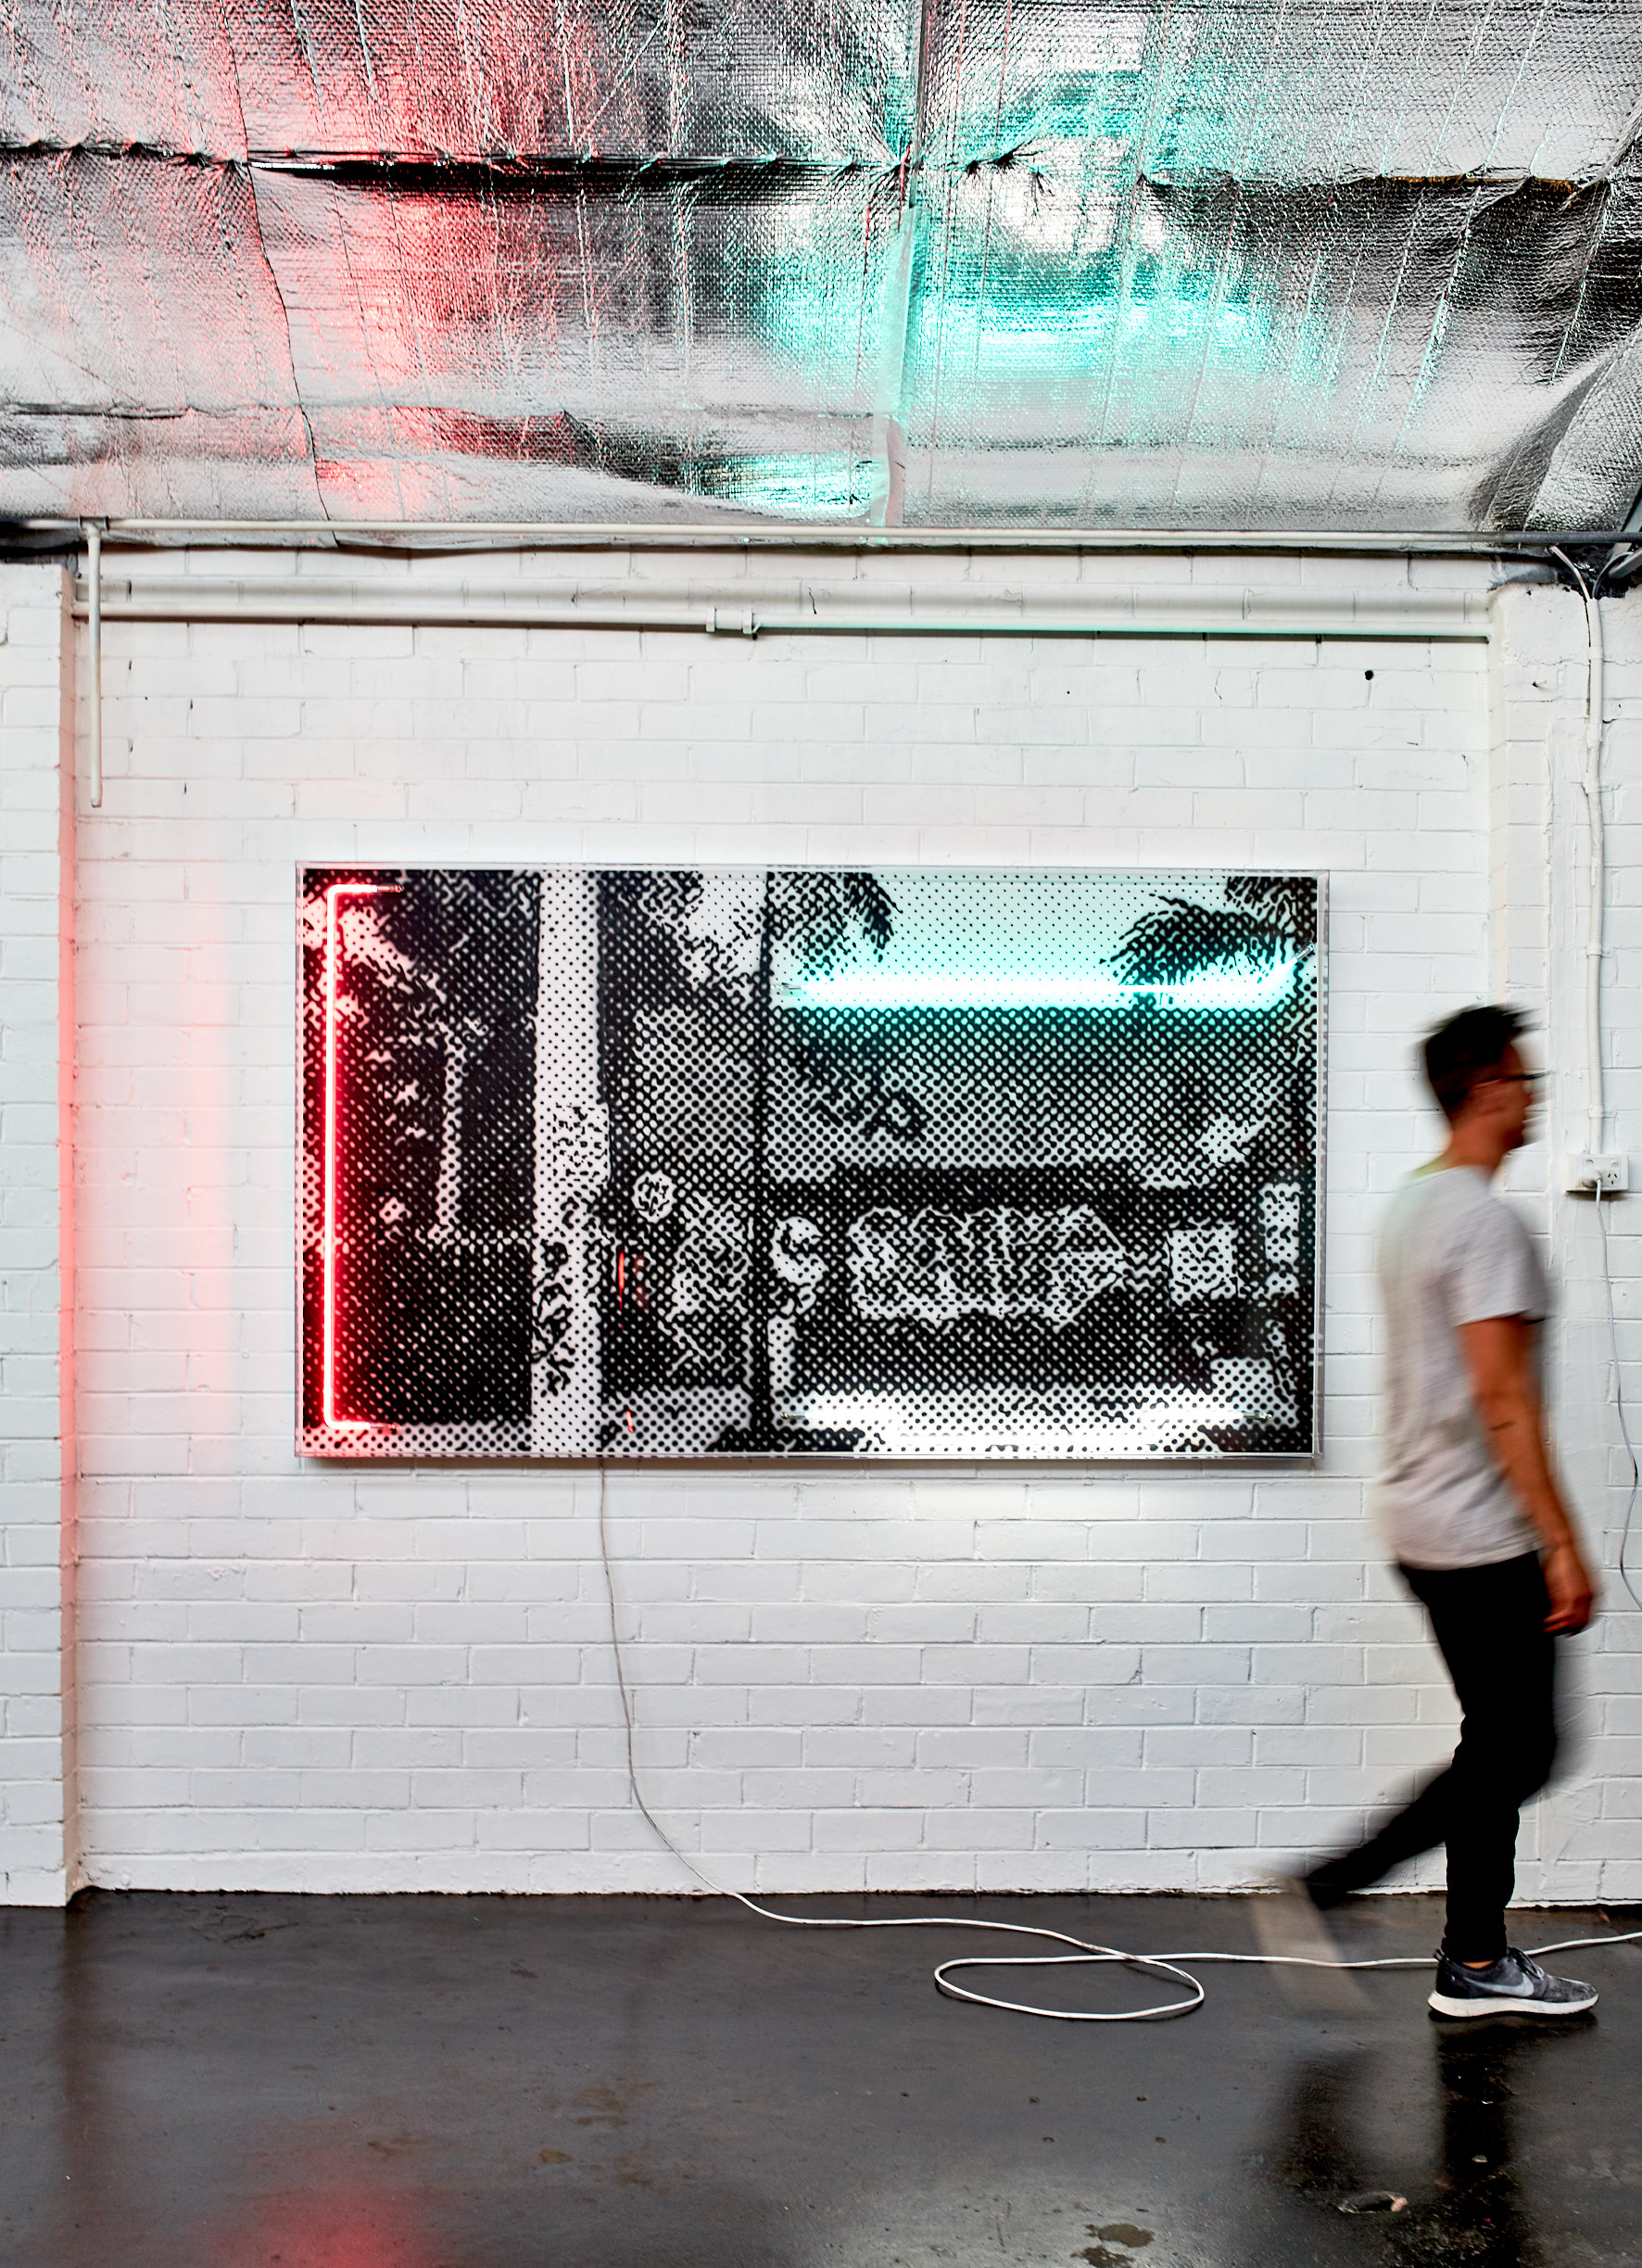 Wynwood Walls, 2019  Airbrush polymer and neon on Dibond, Acrylic frame 120x200cm